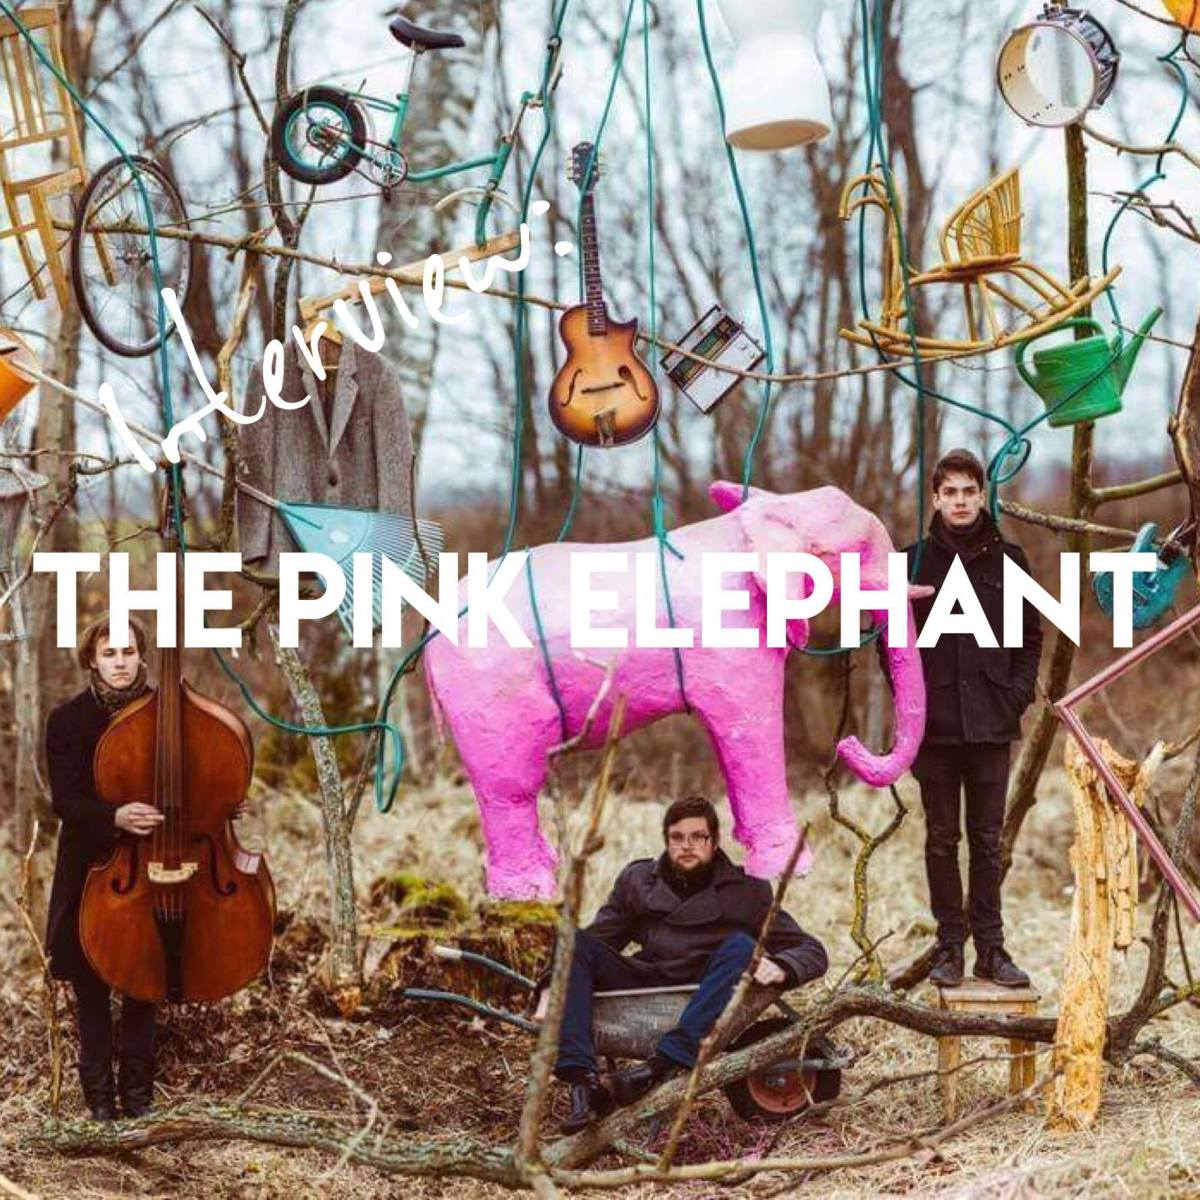 Interview: The Pink Elephant from Latvia